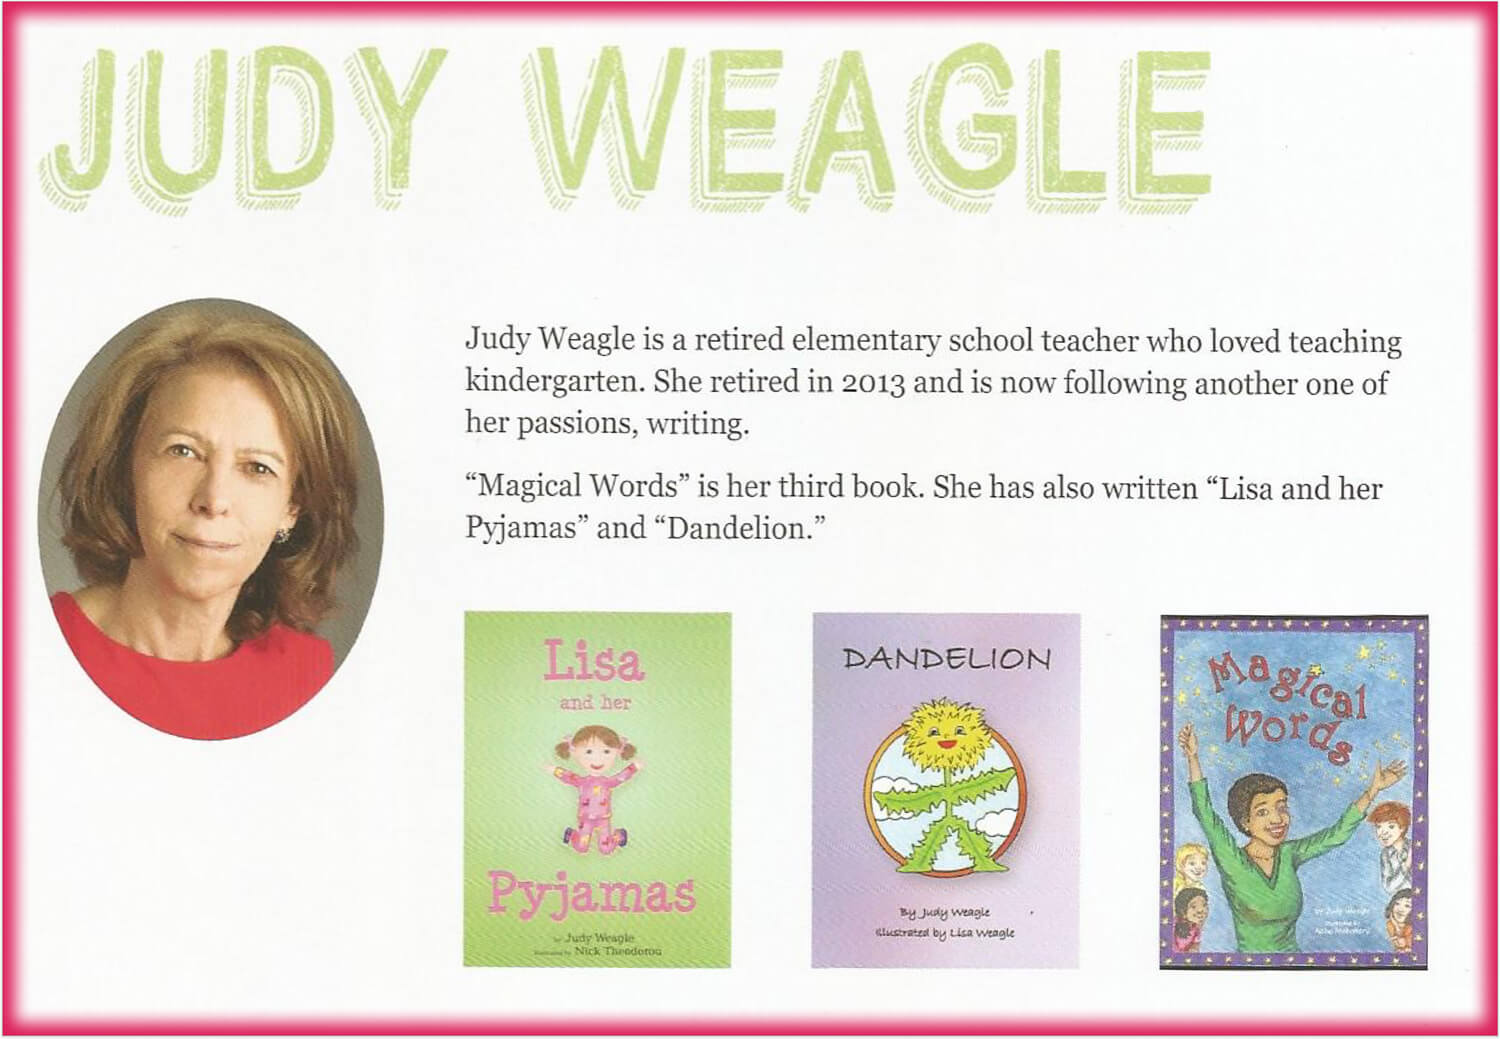 Reading with your kids podcast starring Judy Weagle